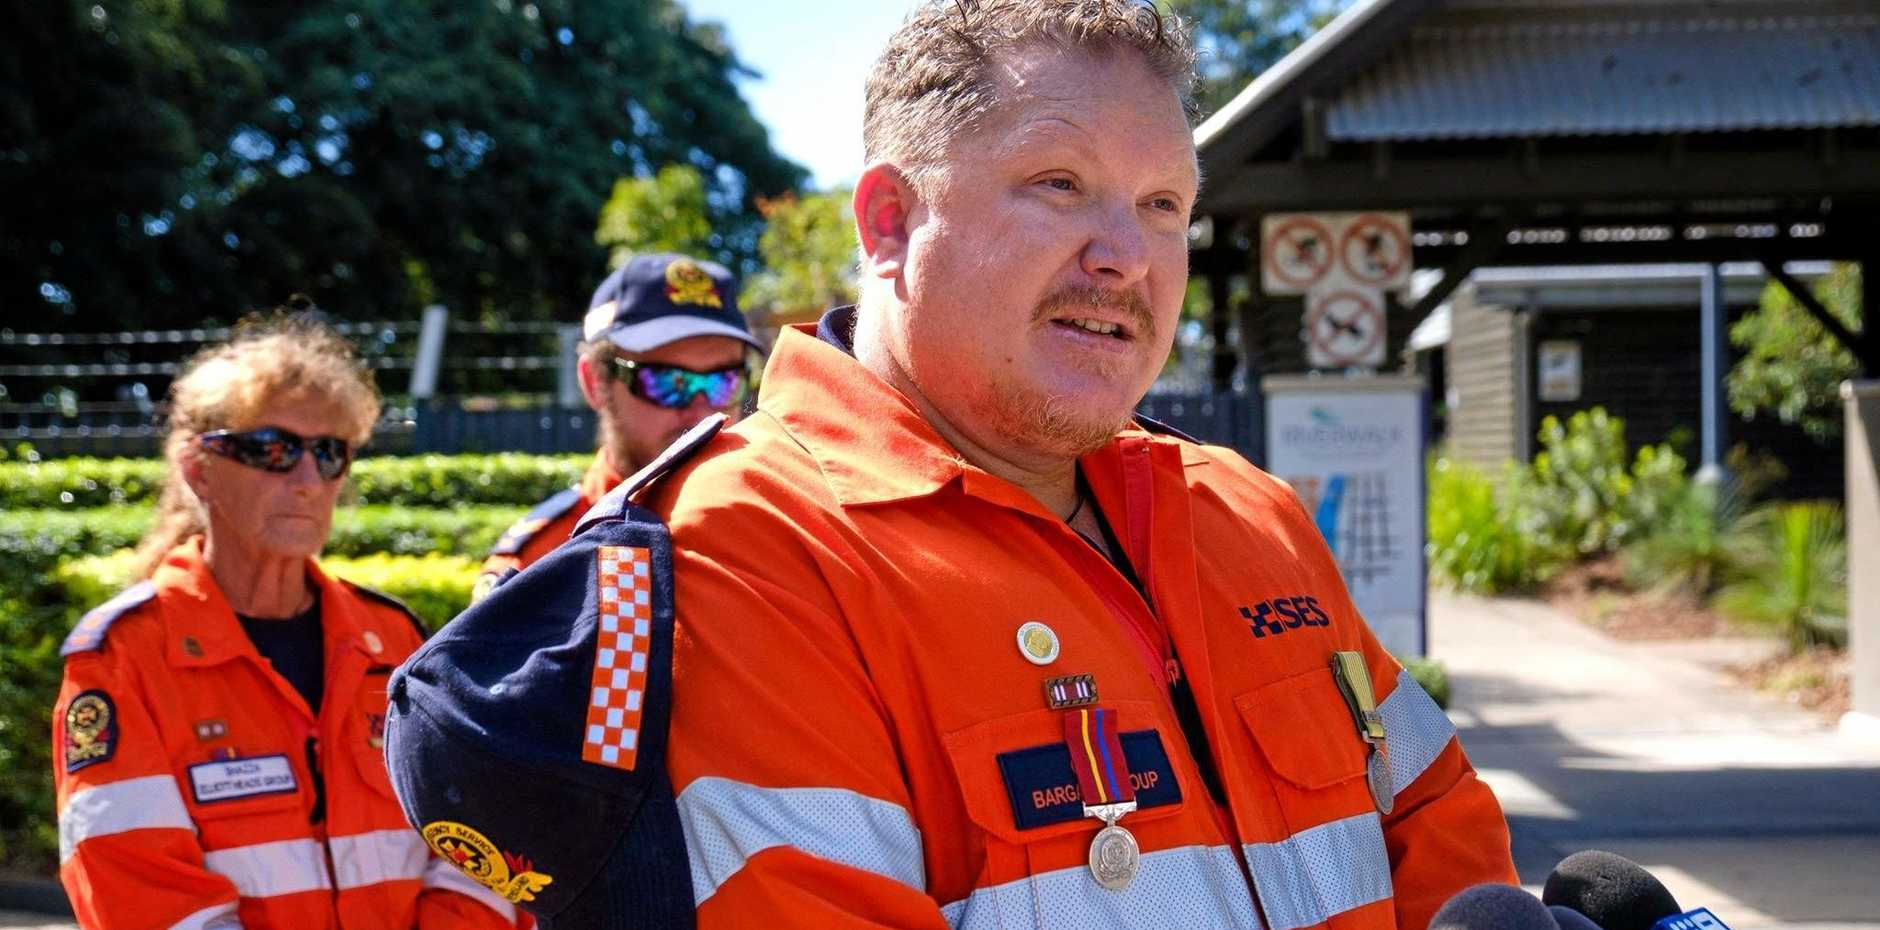 BRAVE TALE: Former SES group leader Cameron Sage tells of the harrowing rescue he and his team attended. Sharon Kilby and Blake Hyde were also involved in the rescue.